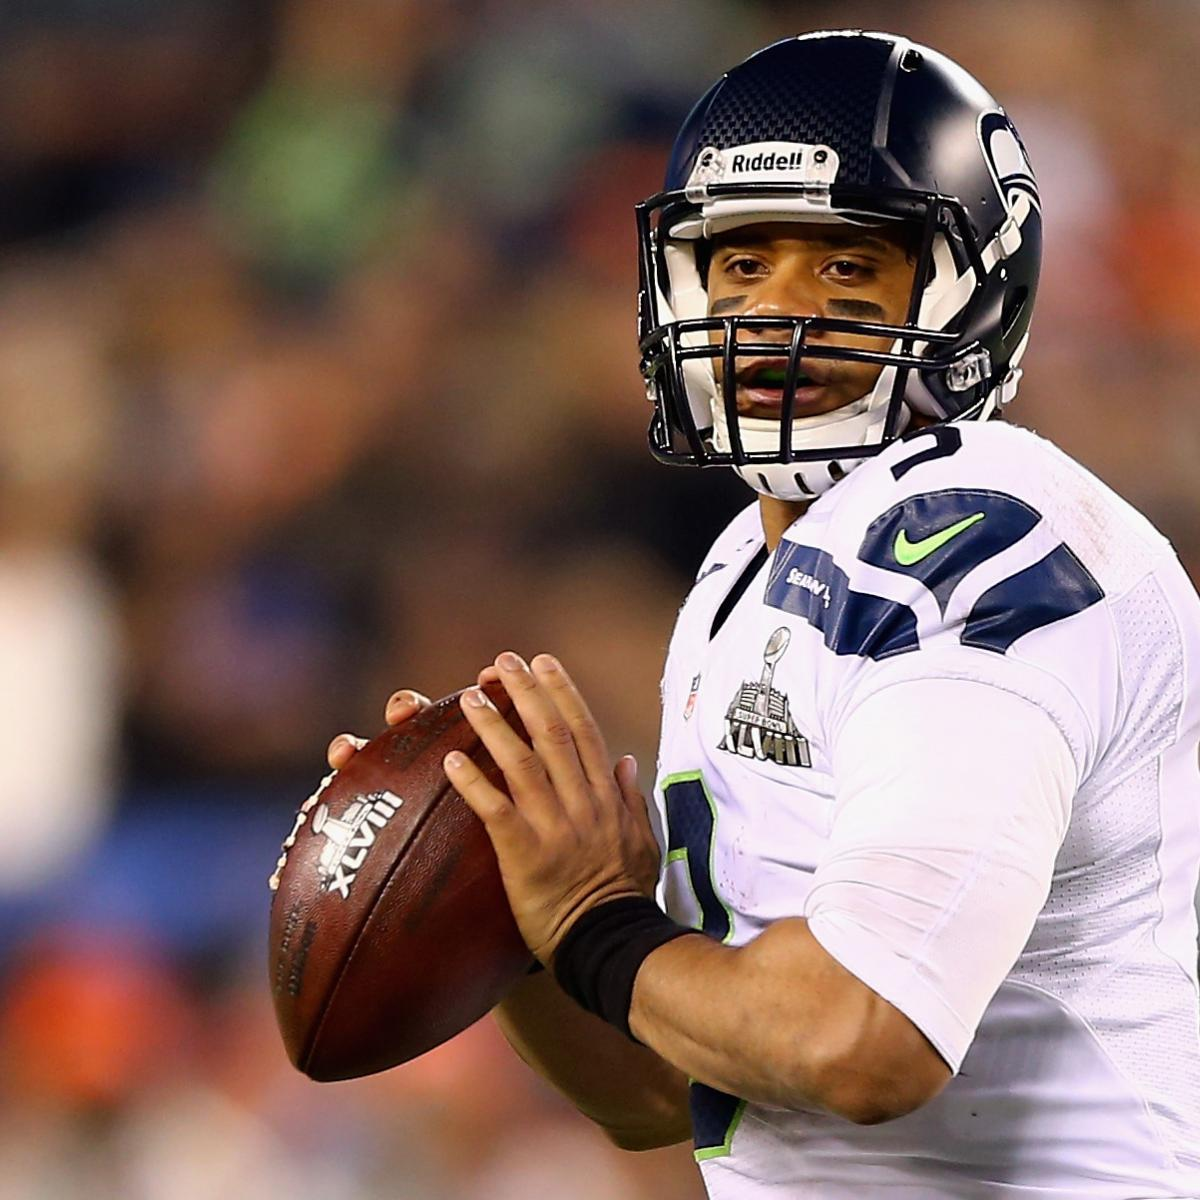 Super Bowl 2014 Stats: How Top Stars Fared in Seahawks vs